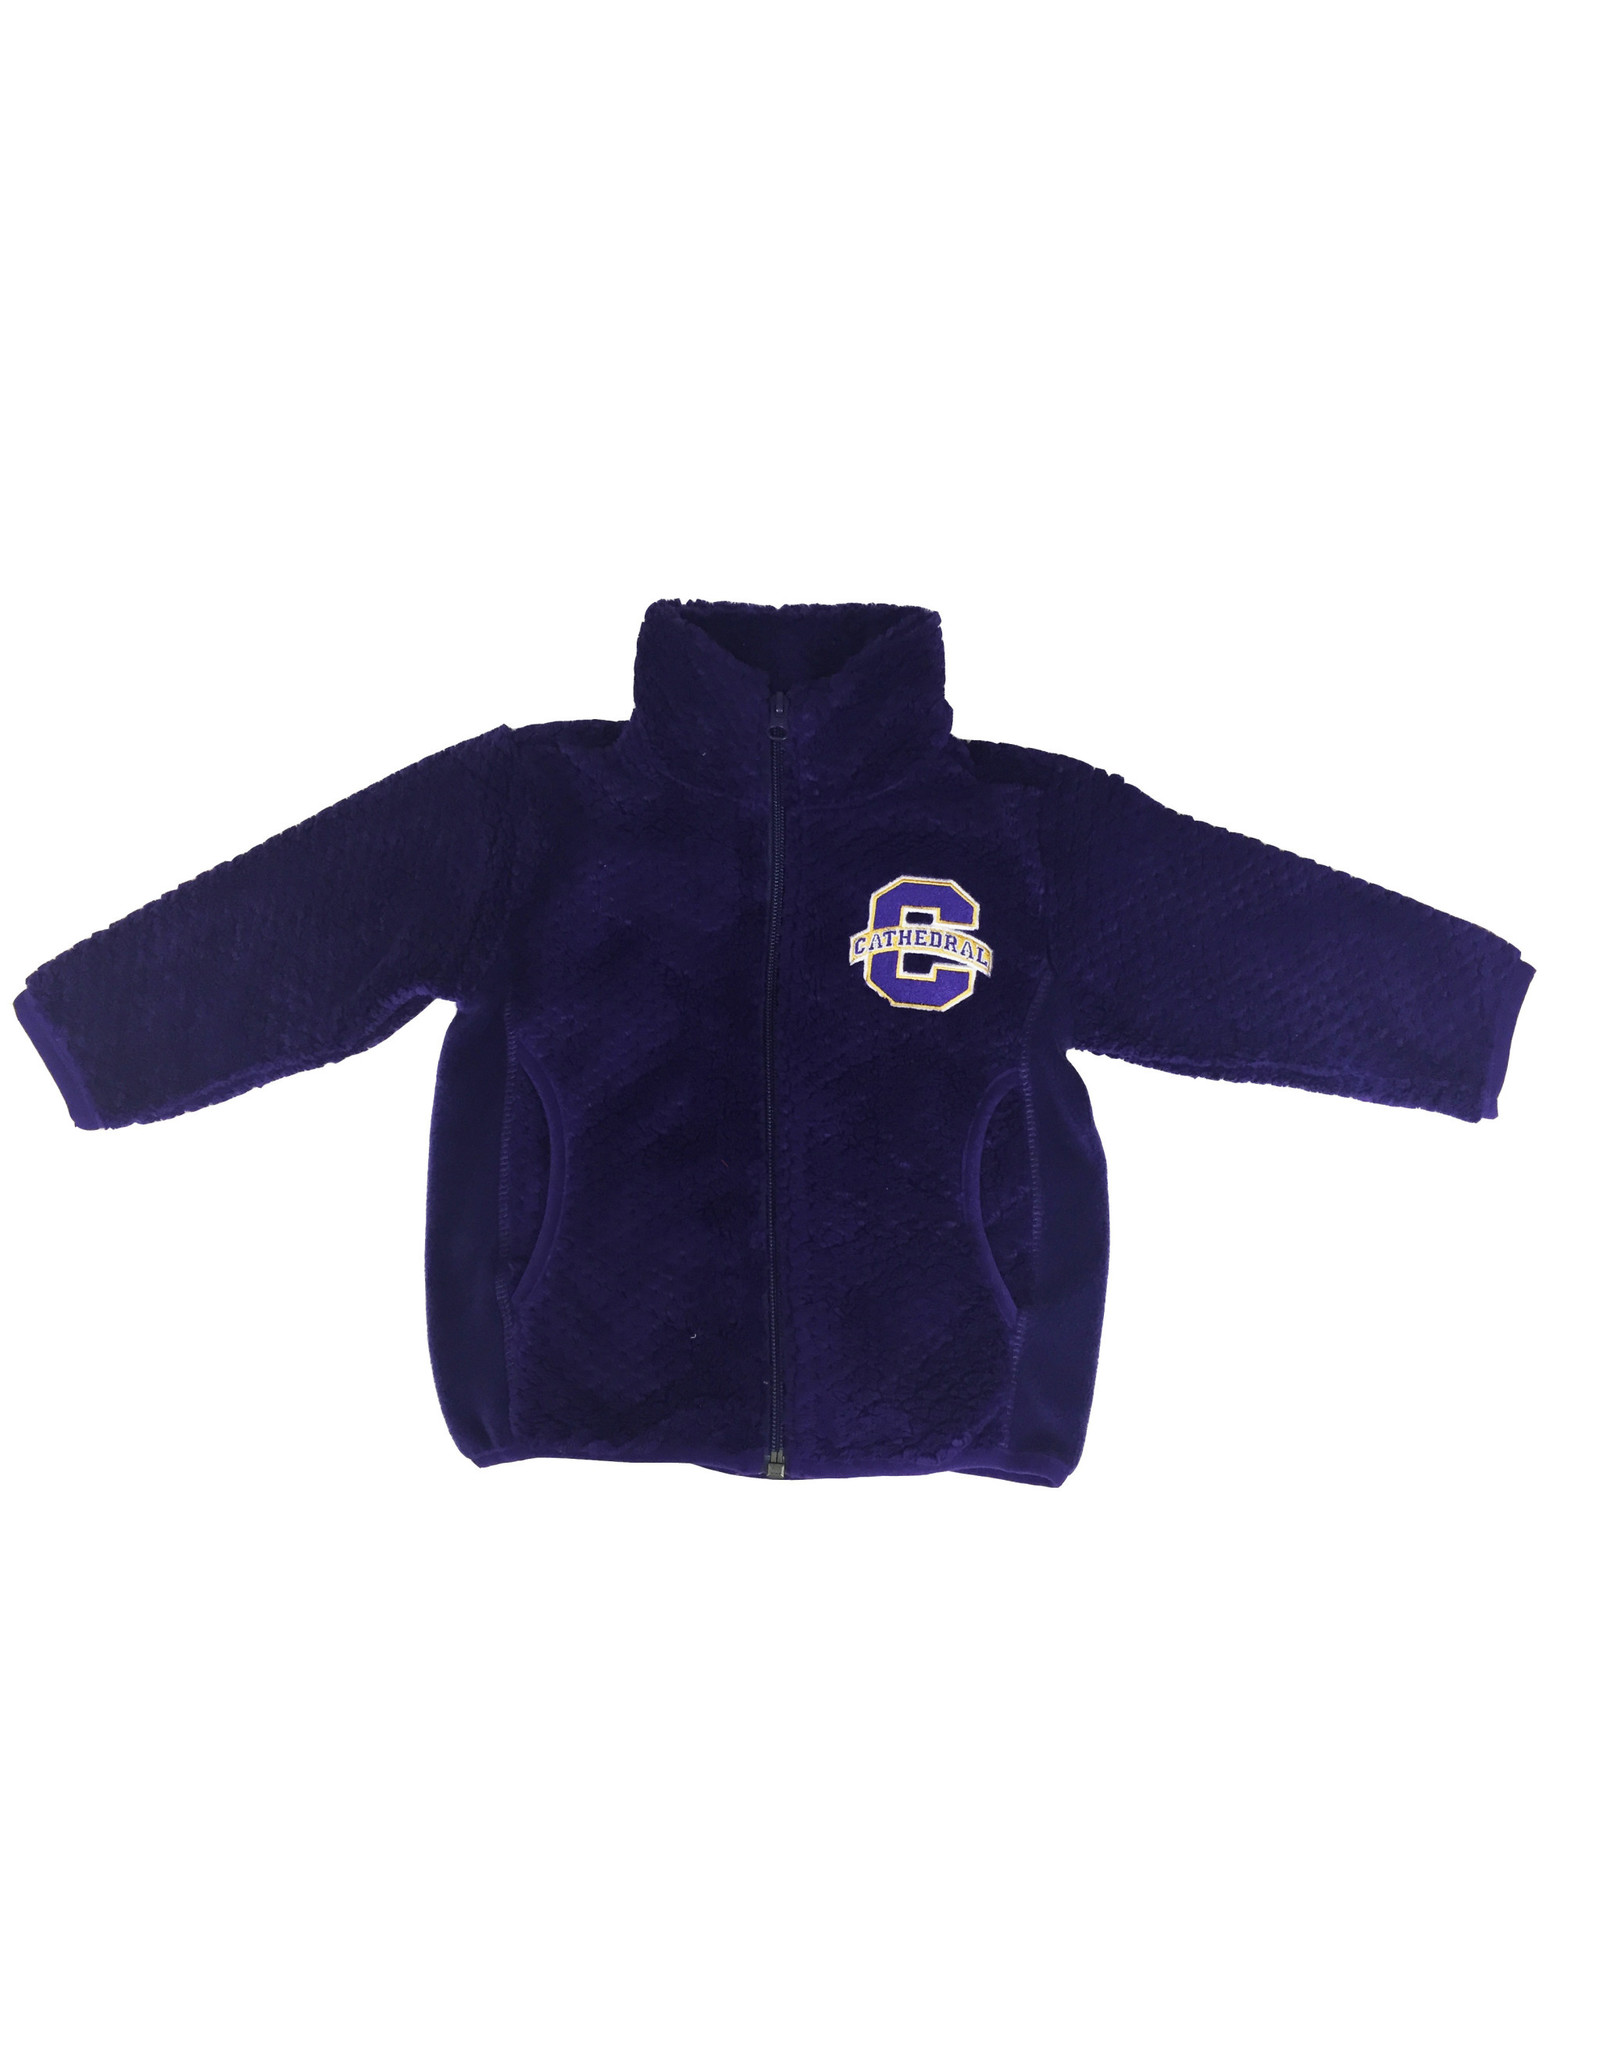 JACKET-FLEECE PURPLE